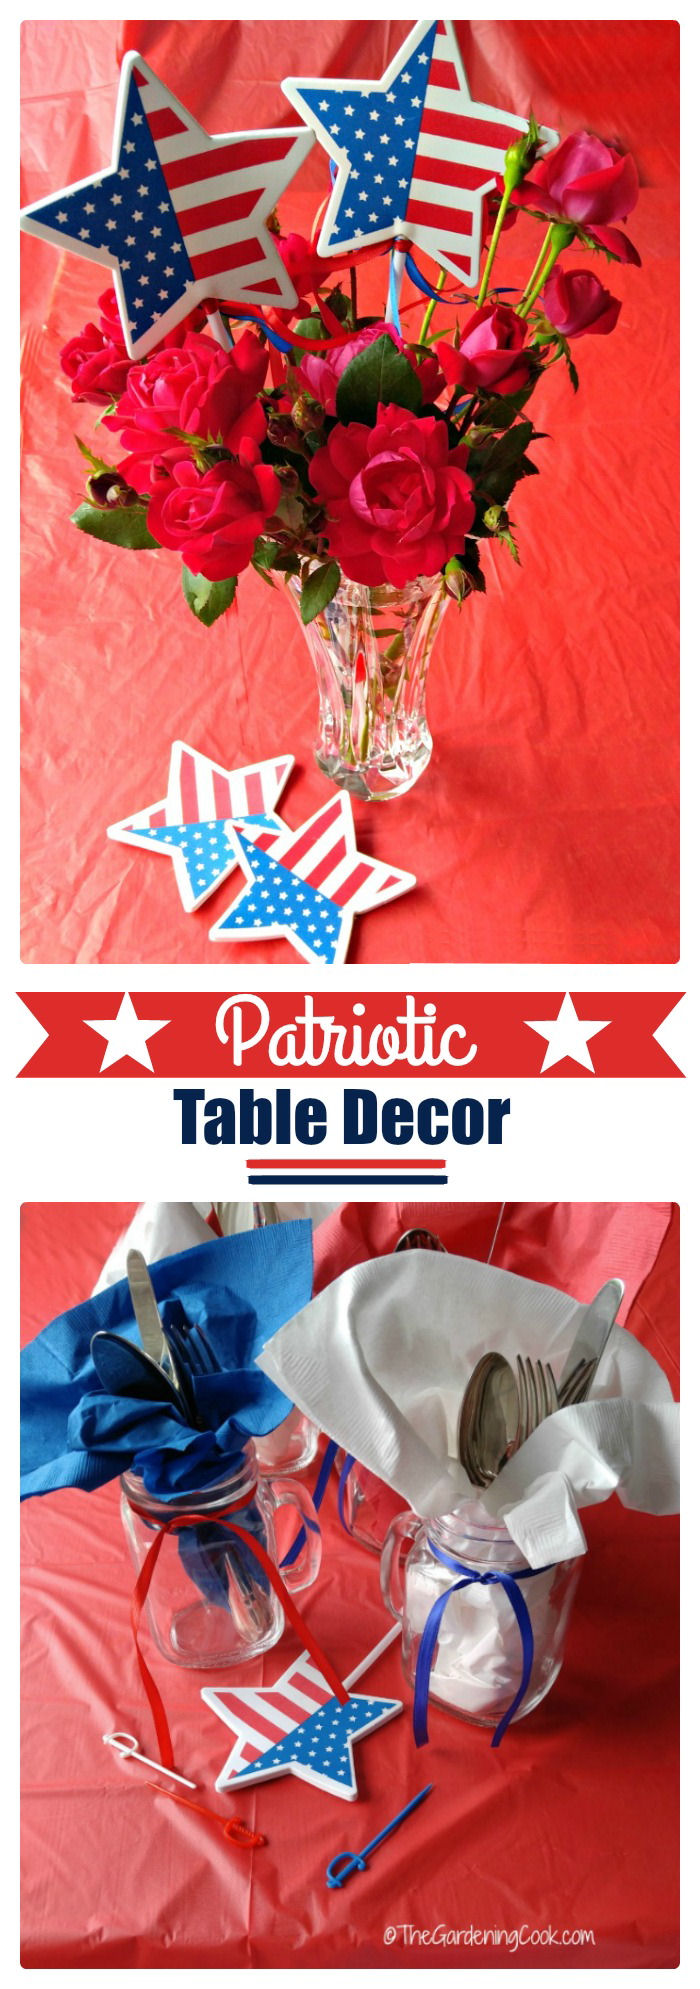 You don't have to spend a lot of time or money on Patriotic table decor for your Memorial Day or Fourth of July parties. See my tips for inexpensive and fast patriotic decor ideas. thegardeningcook.com #DipintoMeze #ad